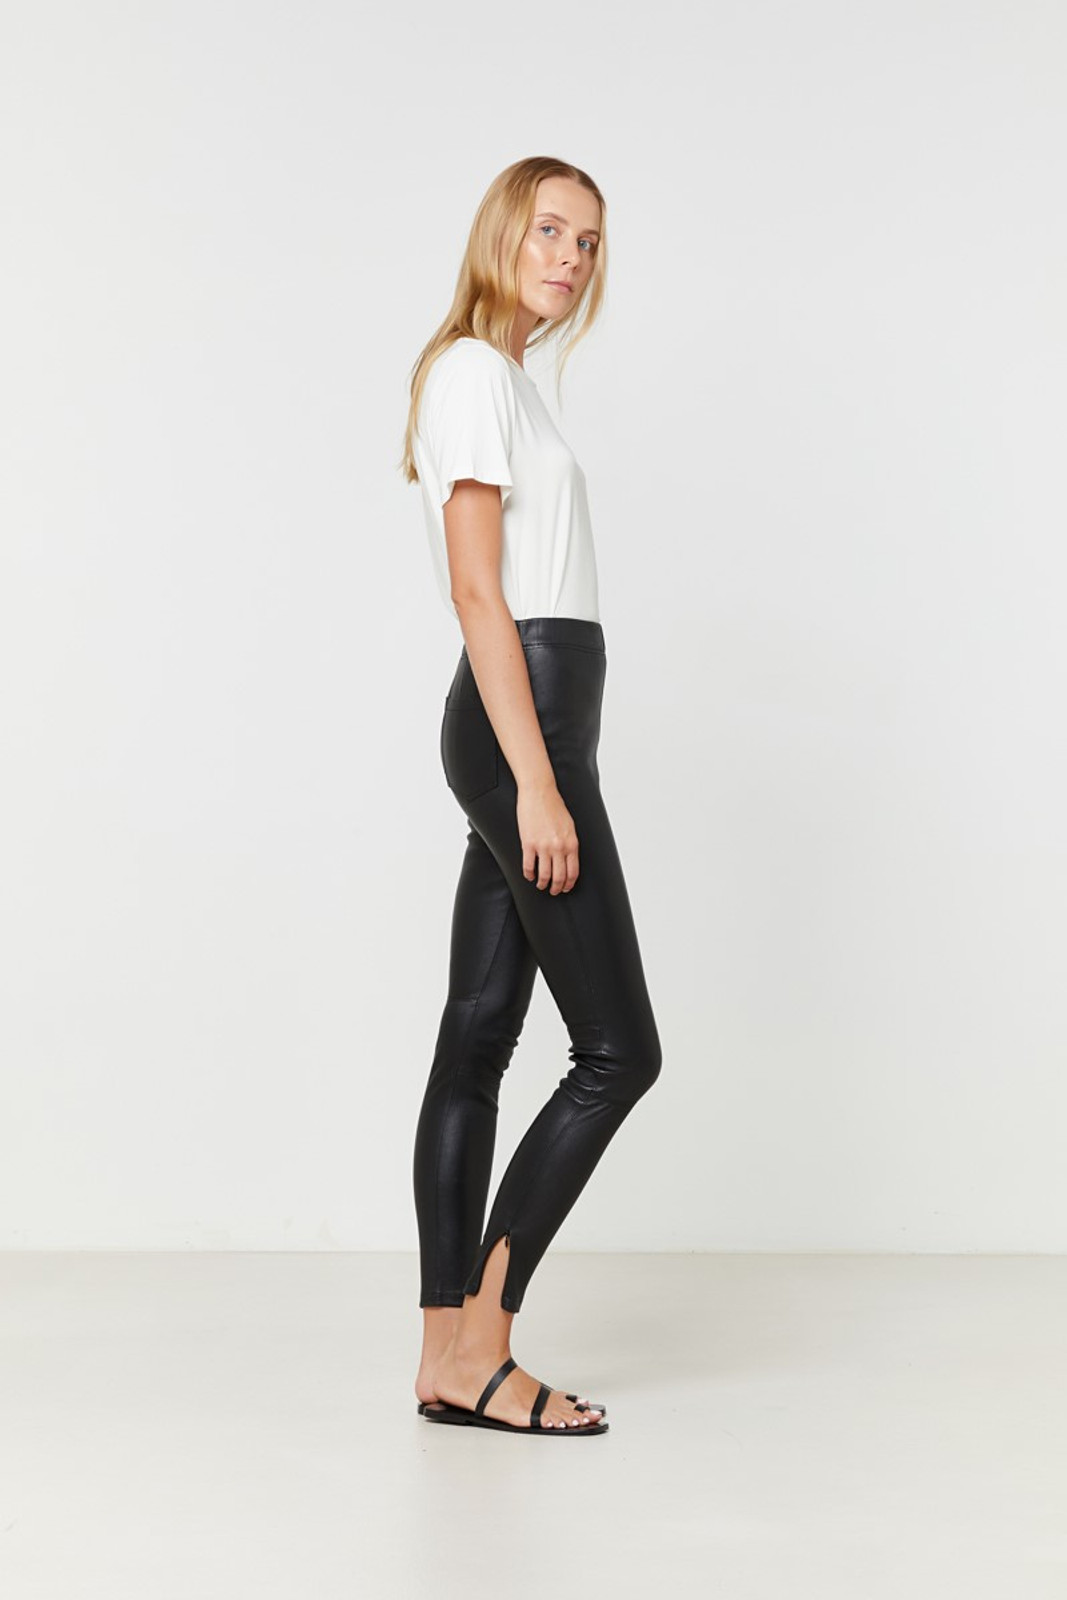 Elka Collective Rosa Leather Pant Black  6